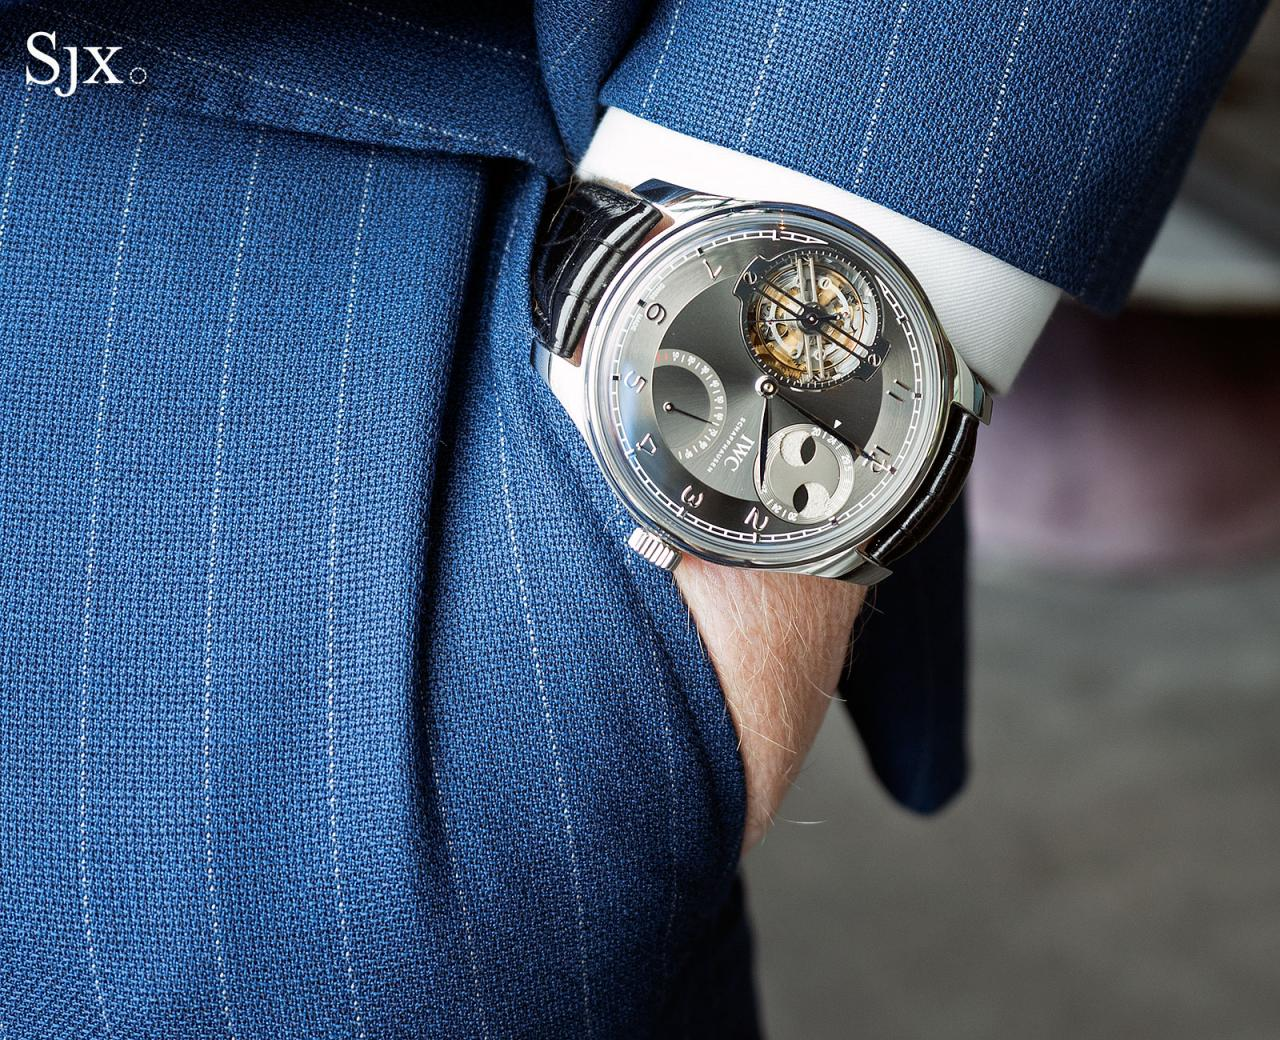 IWC Portugieser Constant-Force Tourbillon 12